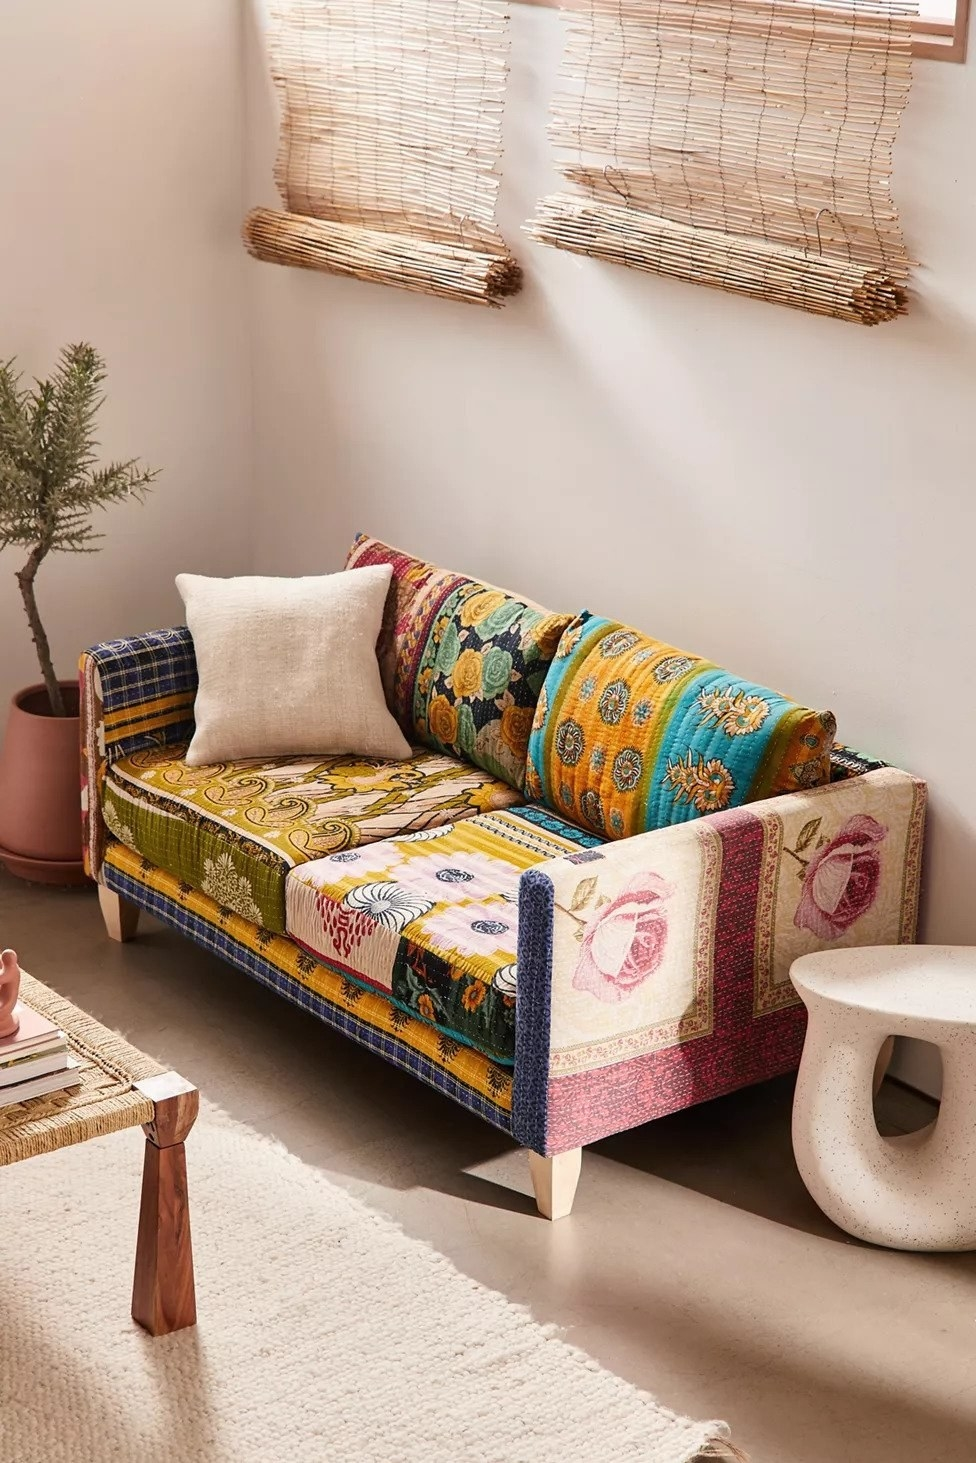 patchwork sofa with different patterns of fabric throughout